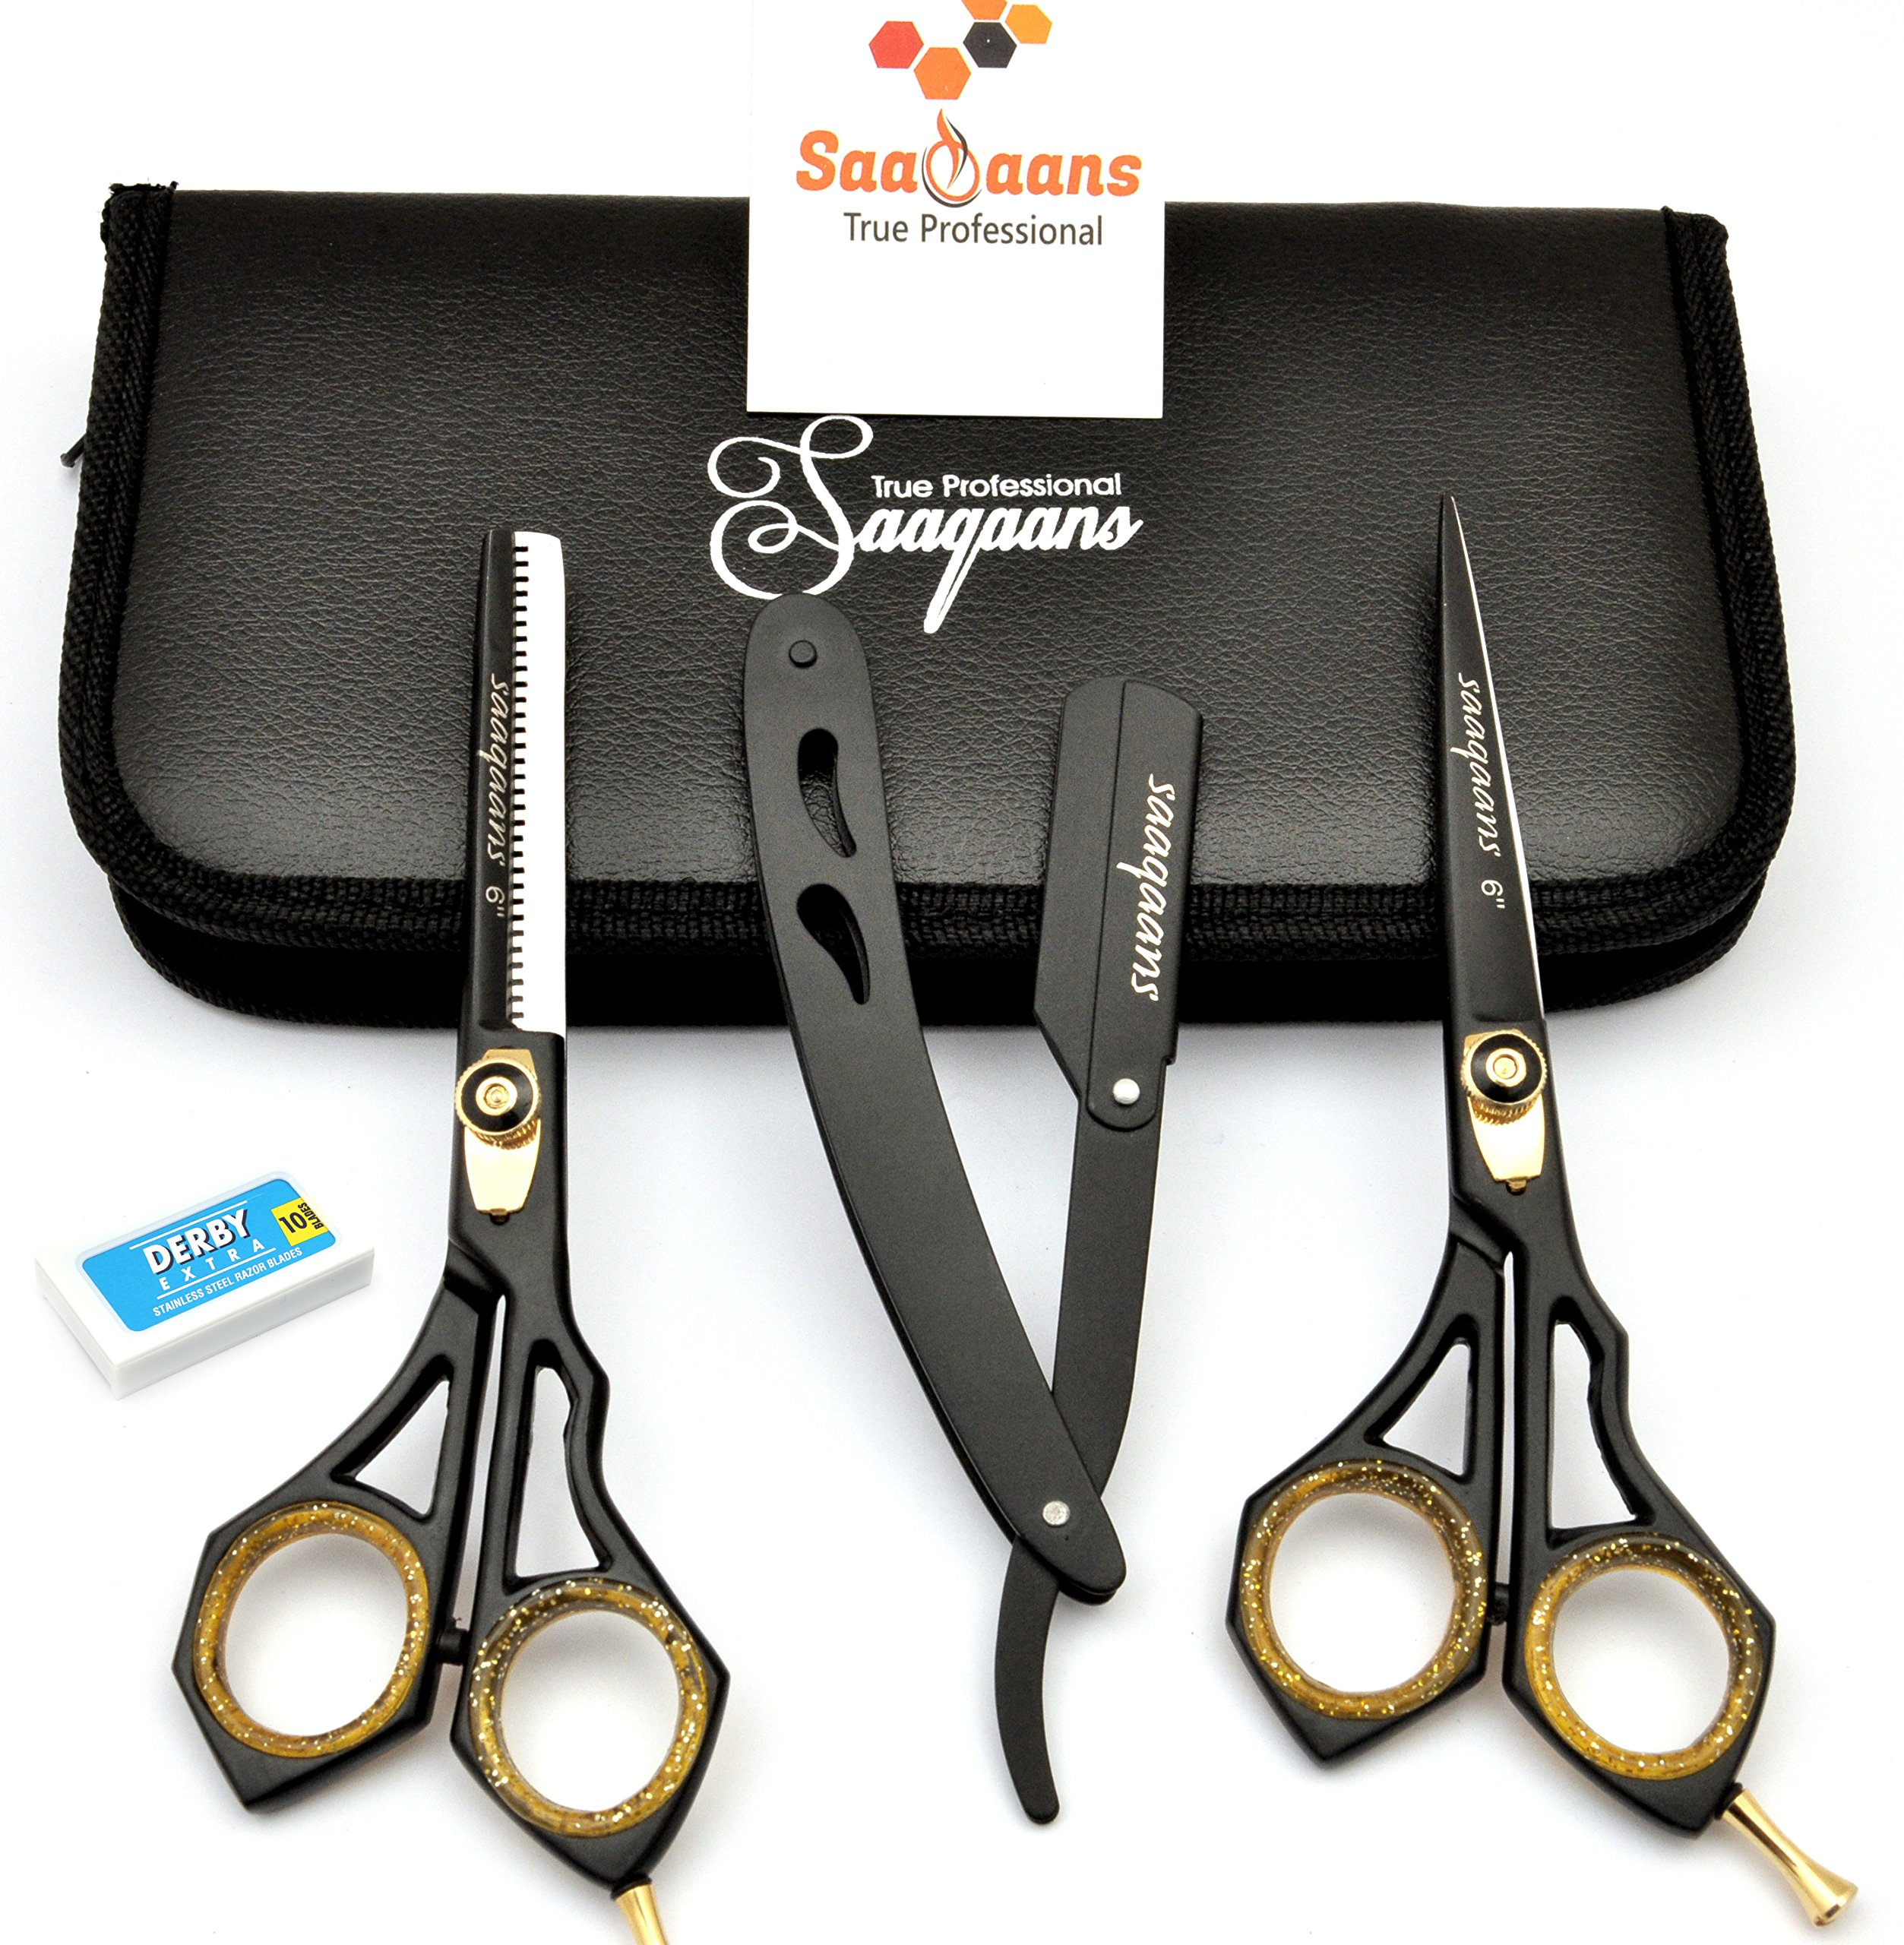 Saaqaans SQKIT Professional Hairdressing Scissors Set - Package includes Barber Scissor, Thinning Shear, Straight Razor, 10 x Derby Double Edge Blades and Hair Comb in Stylish Black Scissors Case by Saaqaans (Image #8)